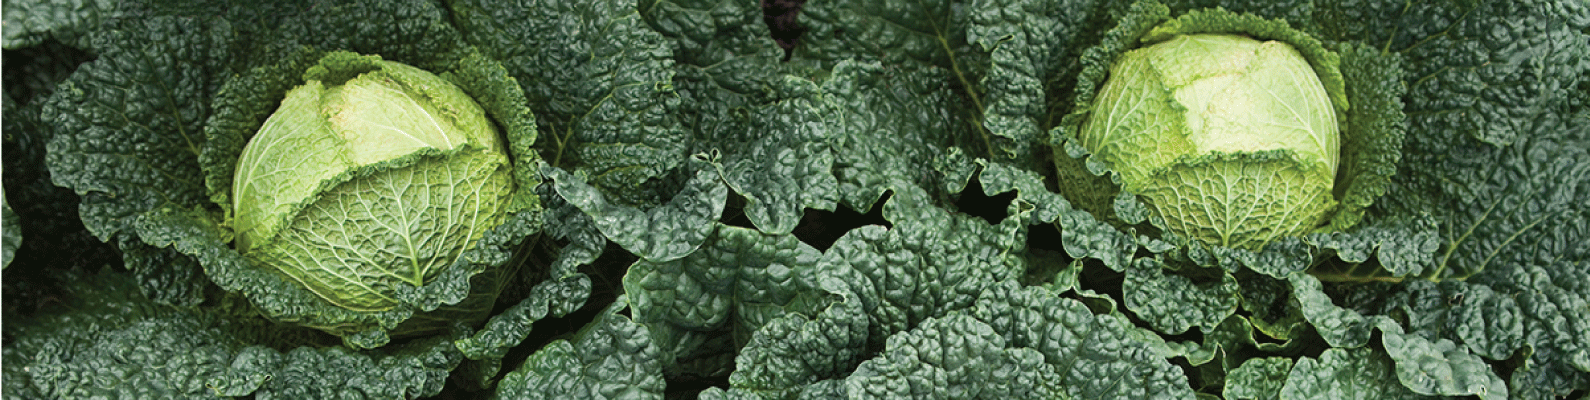 Cabbage-banner.png